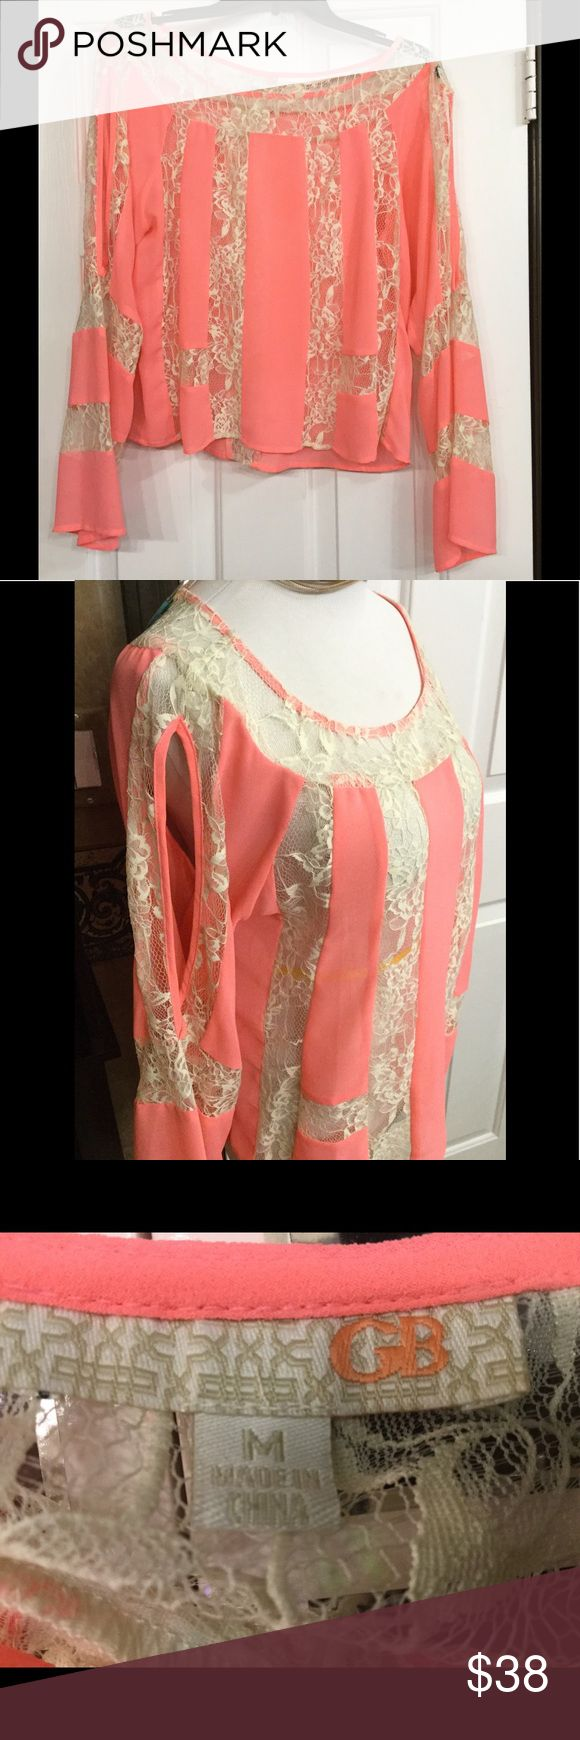 Lace and pink chiffon blouse Bright pink cream lace peek a boo sleeves just adorable can where a lace tube bra from Victoria secret or tank underneath show stopper great colors GB Tops Blouses